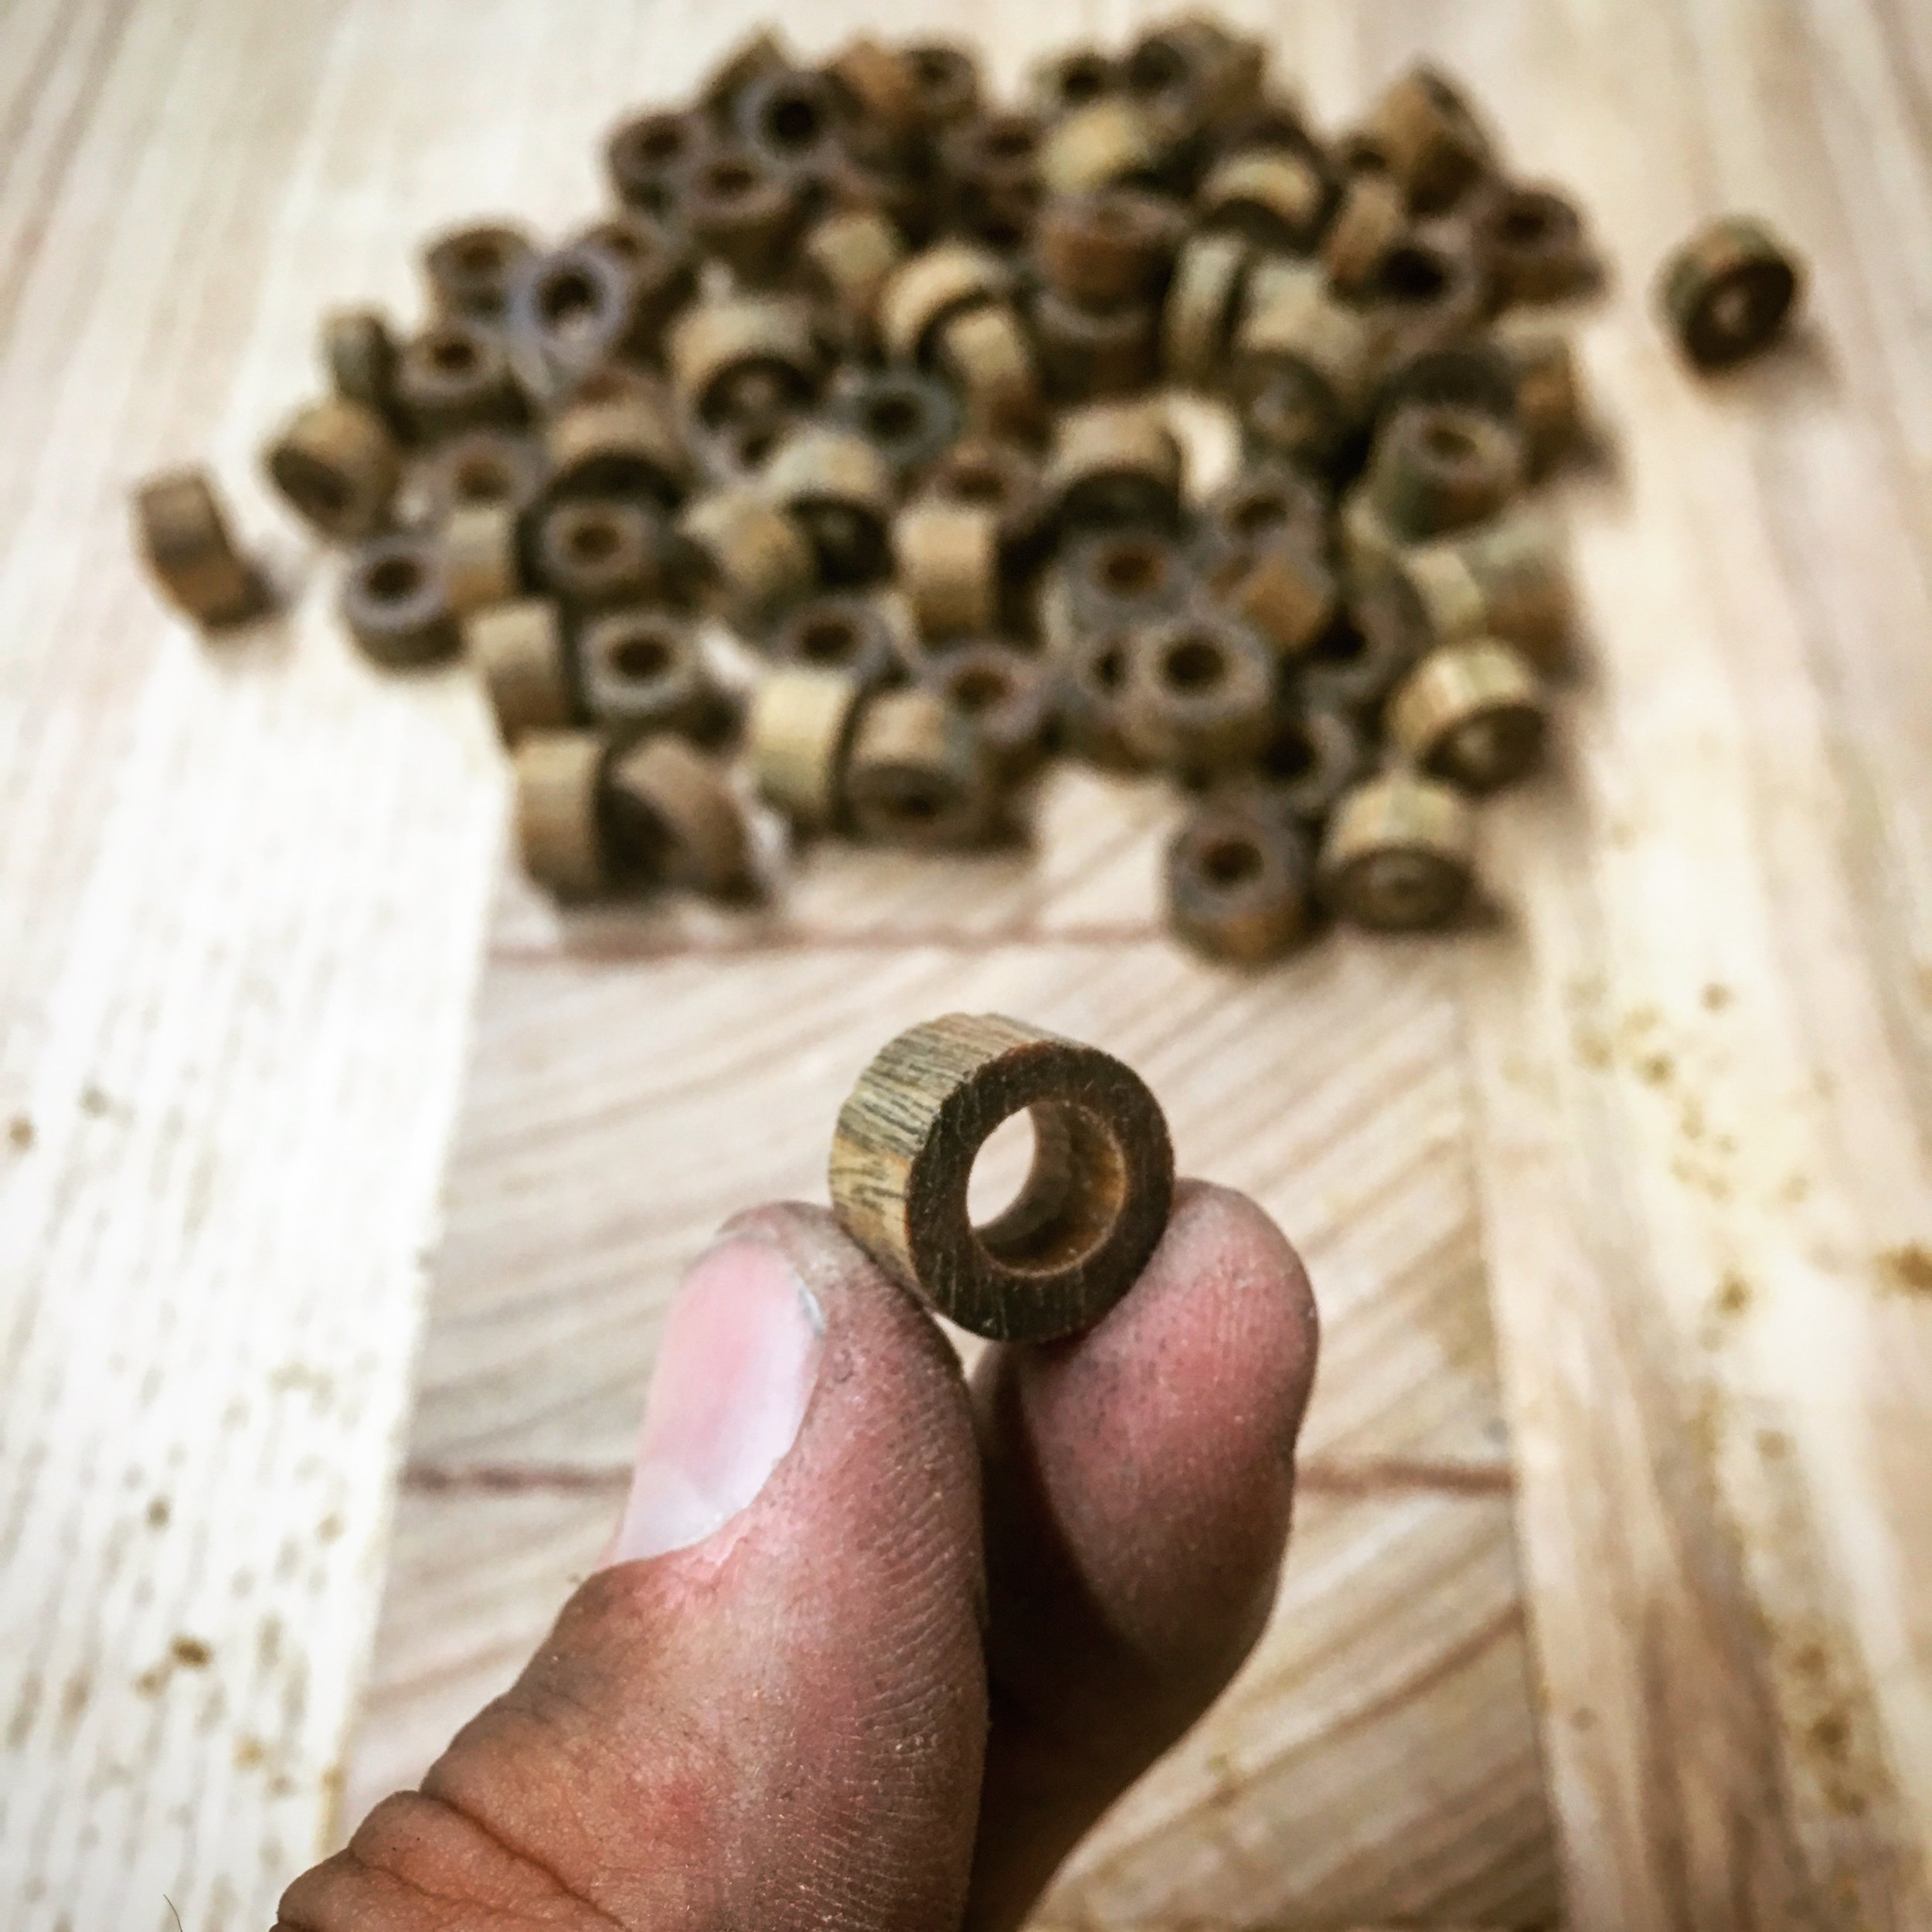 lignum vitae bushings - no oil required